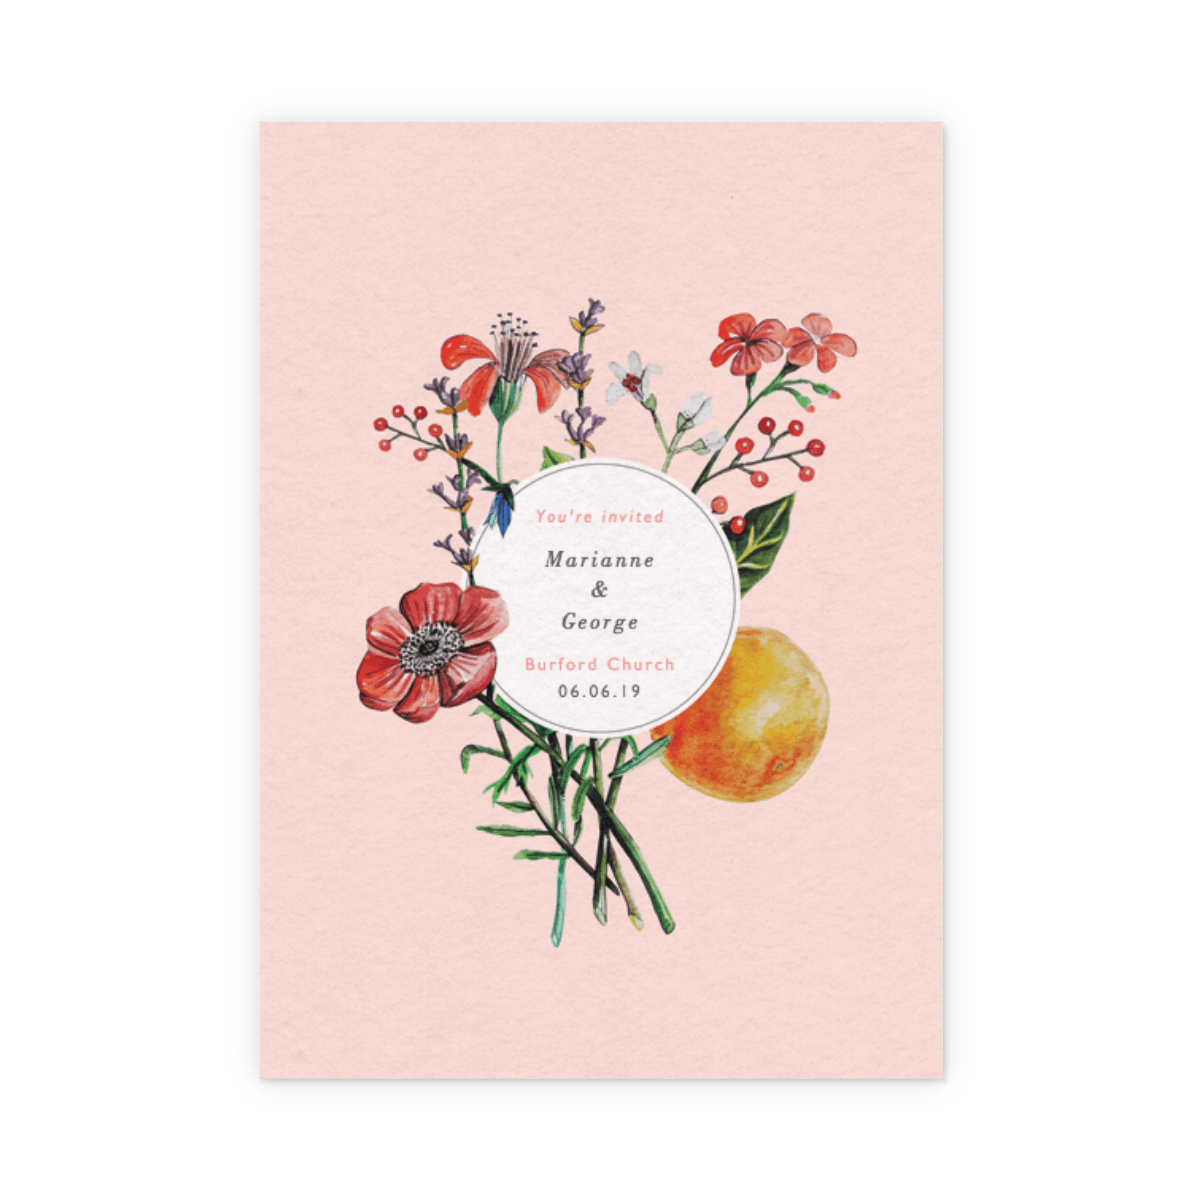 Https%3a%2f%2fwww.papier.com%2fproduct image%2f764%2f4%2fwild flowers 228 vorderseite 1511455542.png?ixlib=rb 1.1